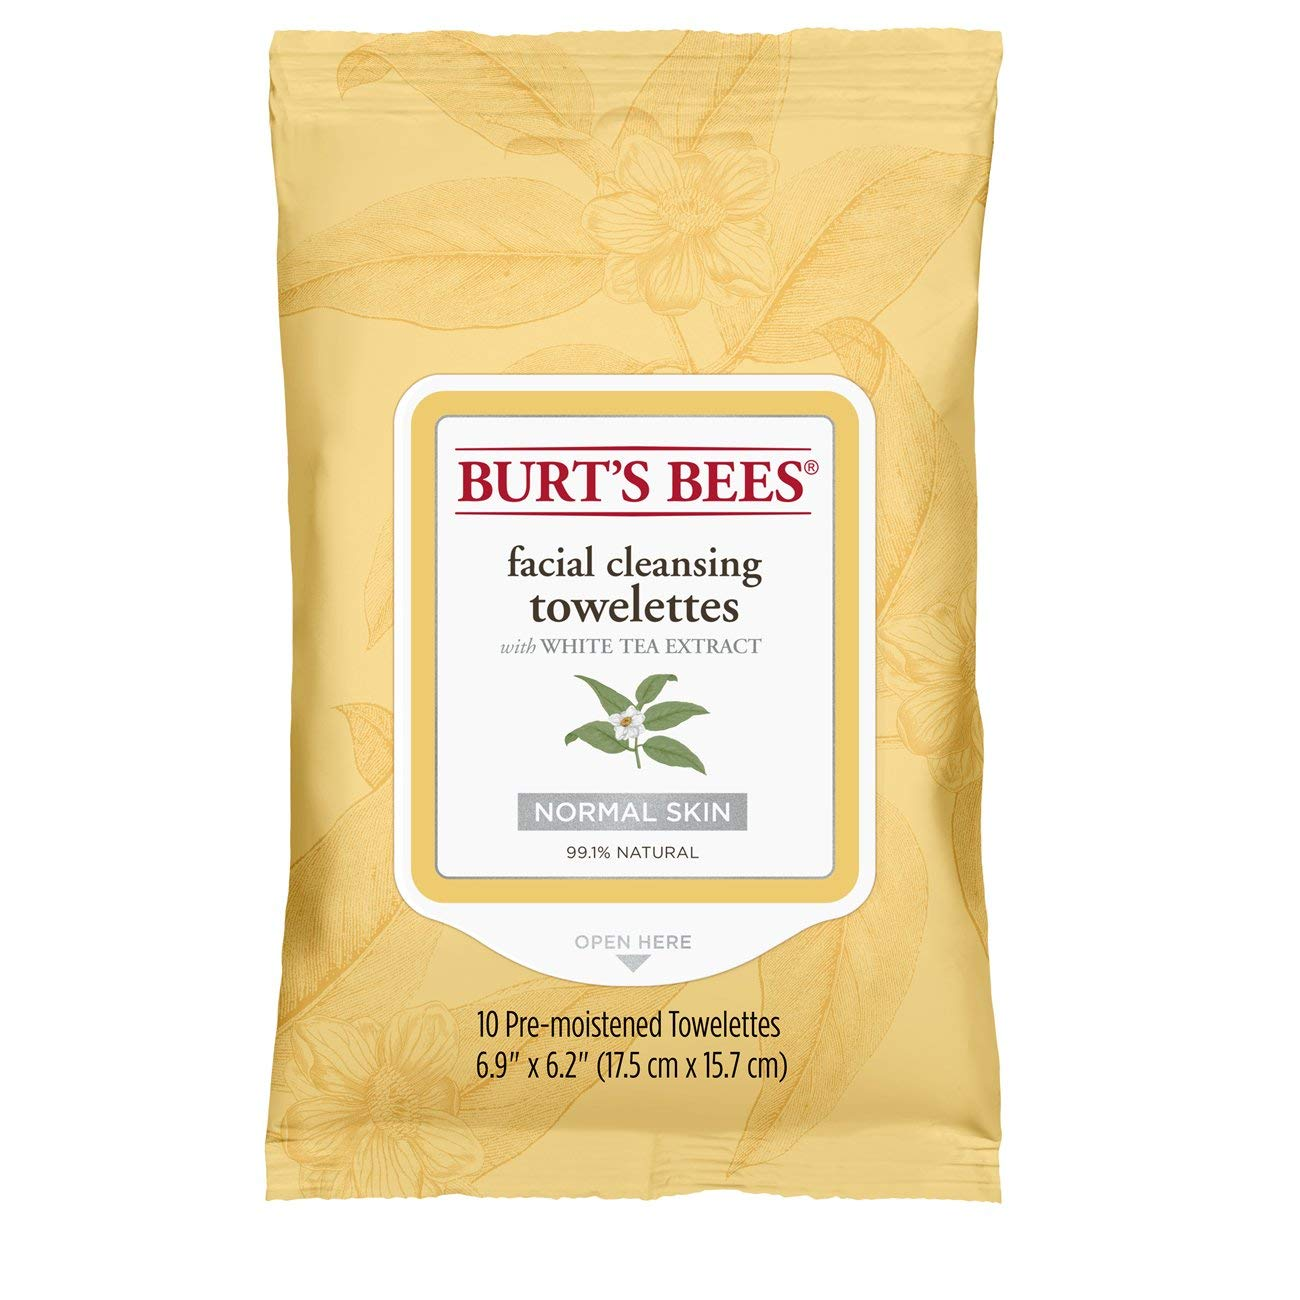 Burt's Bees Facial Cleansing Towelettes with White Tea Extract, 10 count Burt's Bees